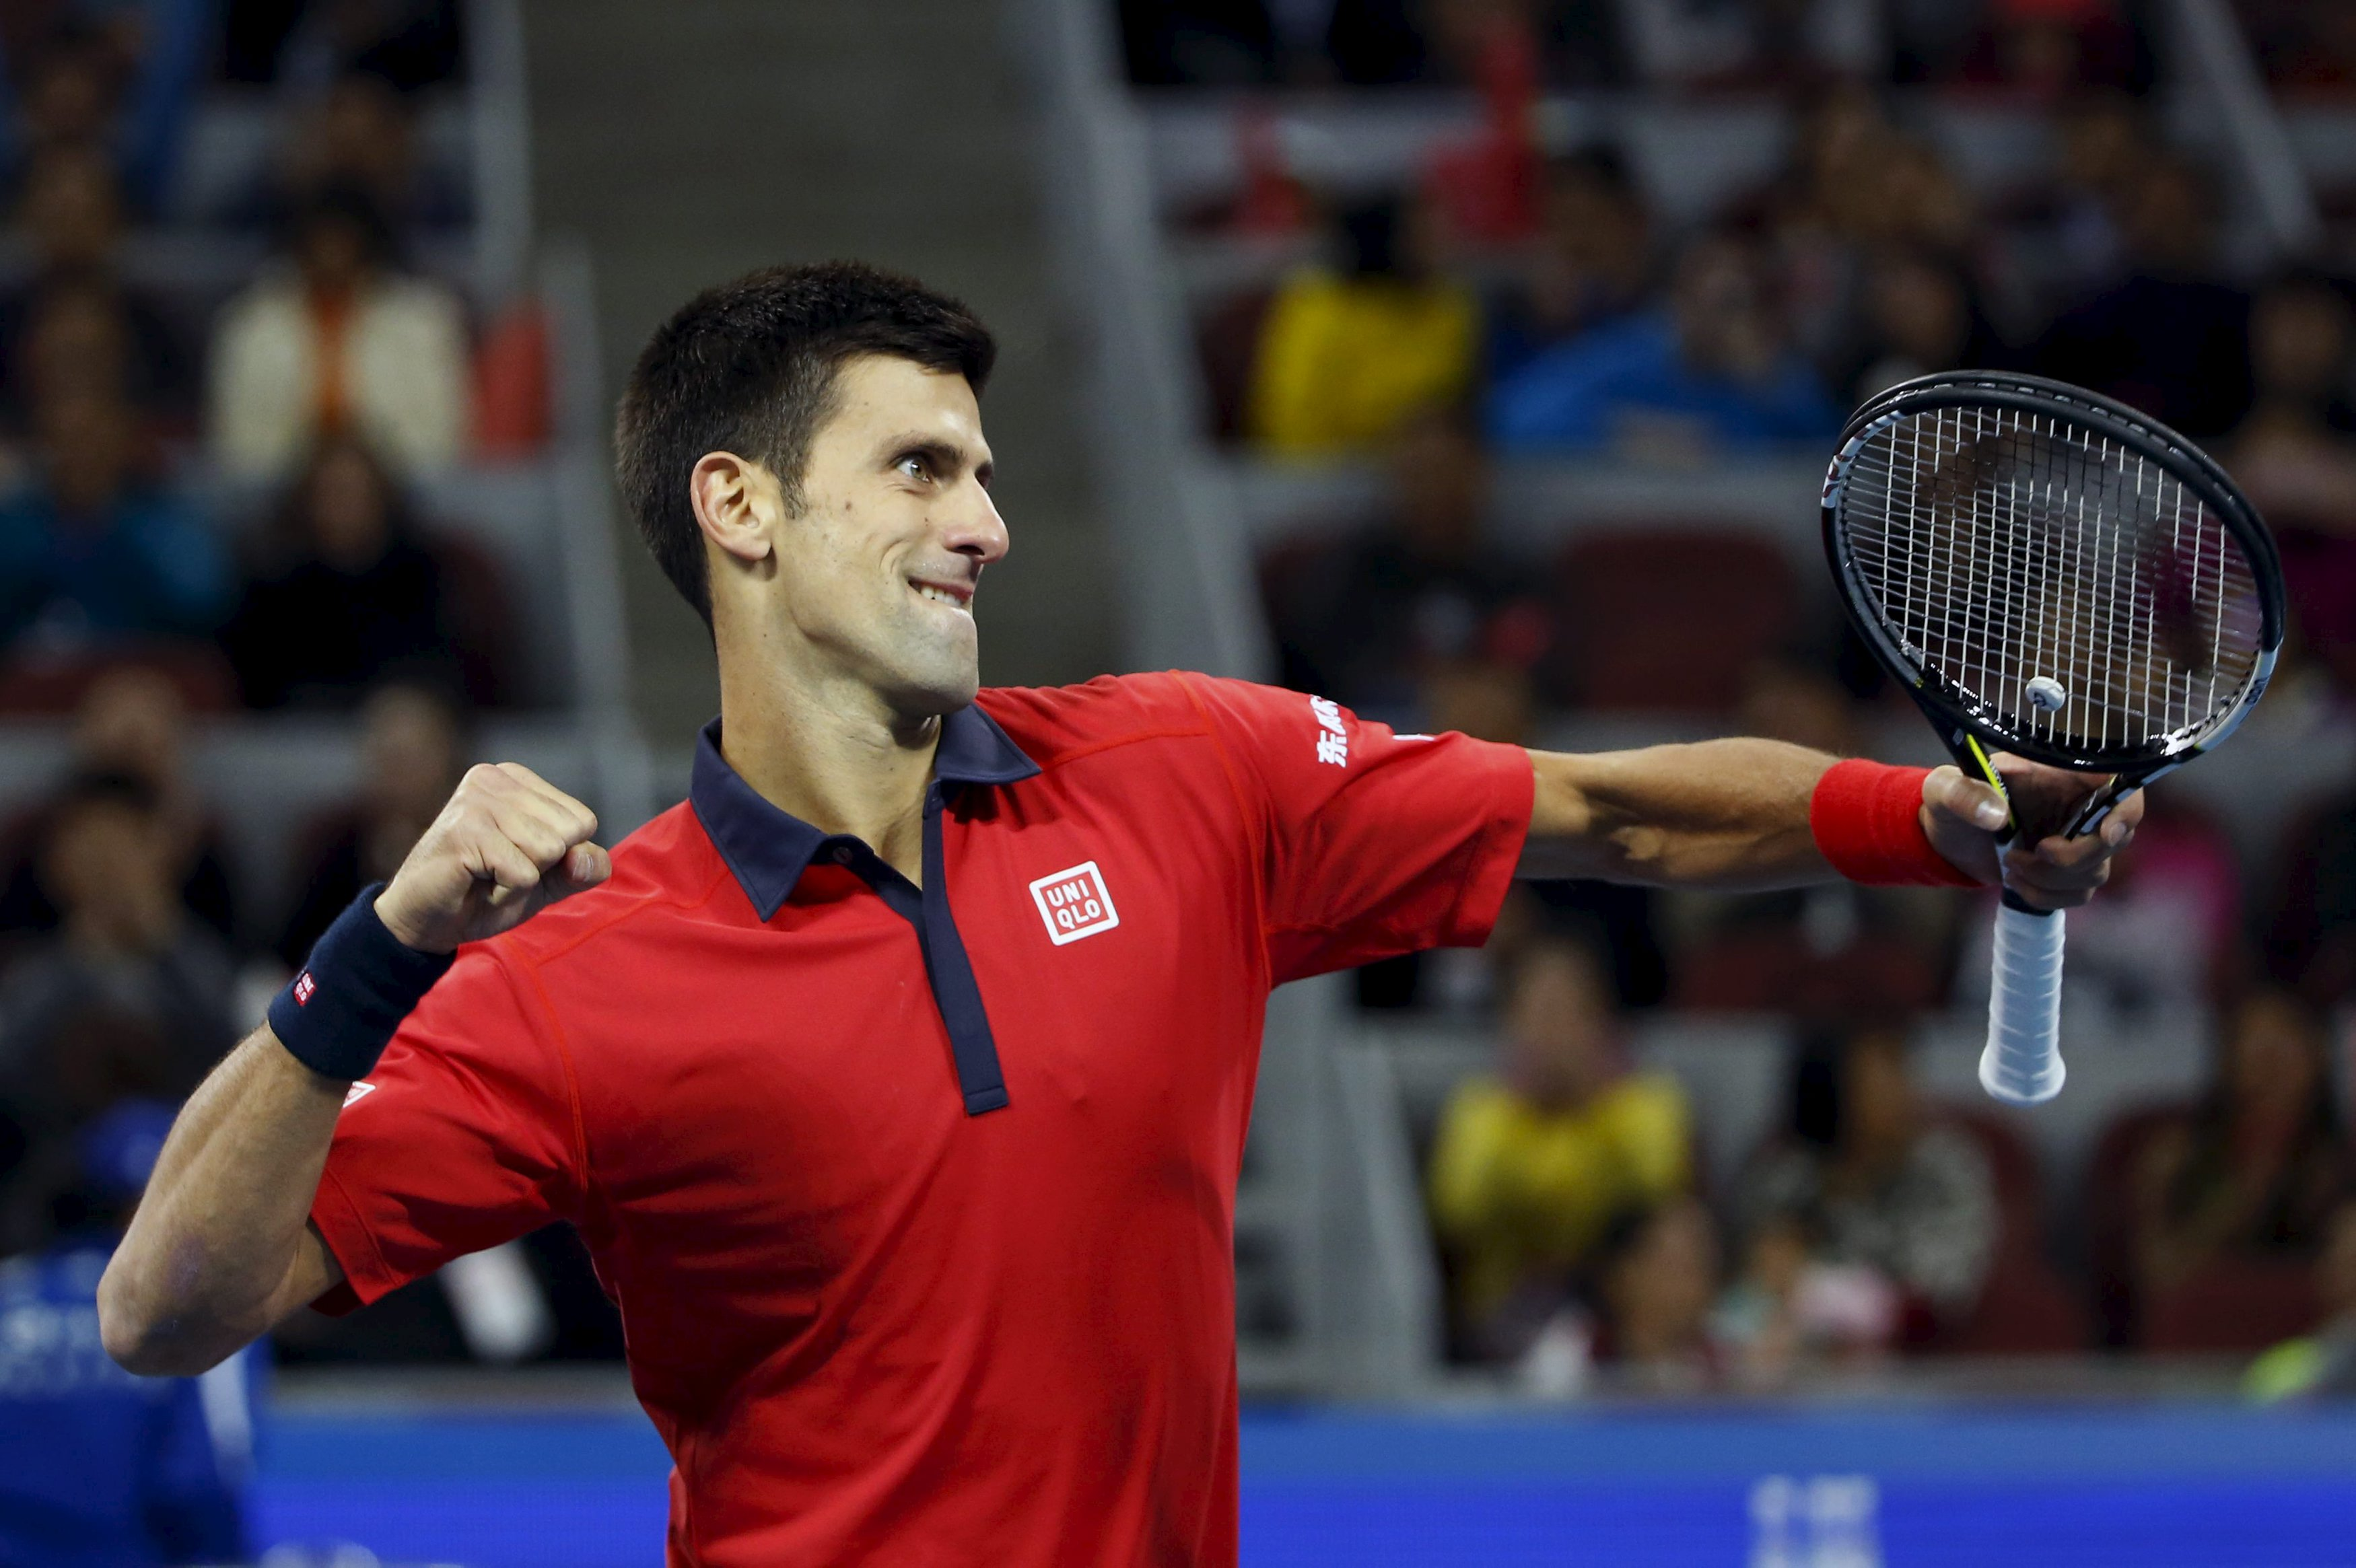 Novak Djokovic of Serbia reacts after winning a point against David Ferrer of Spain during their men's singles semifinal match at the China Open tennis tournament in Beijing, China, October 10, 2015. Rafa Nadal will take on world number one Djokovic in the China Open final after the multiple grand slam champions bludgeoned their way to straight-sets wins on Saturday. REUTERS/Kim Kyung-Hoon